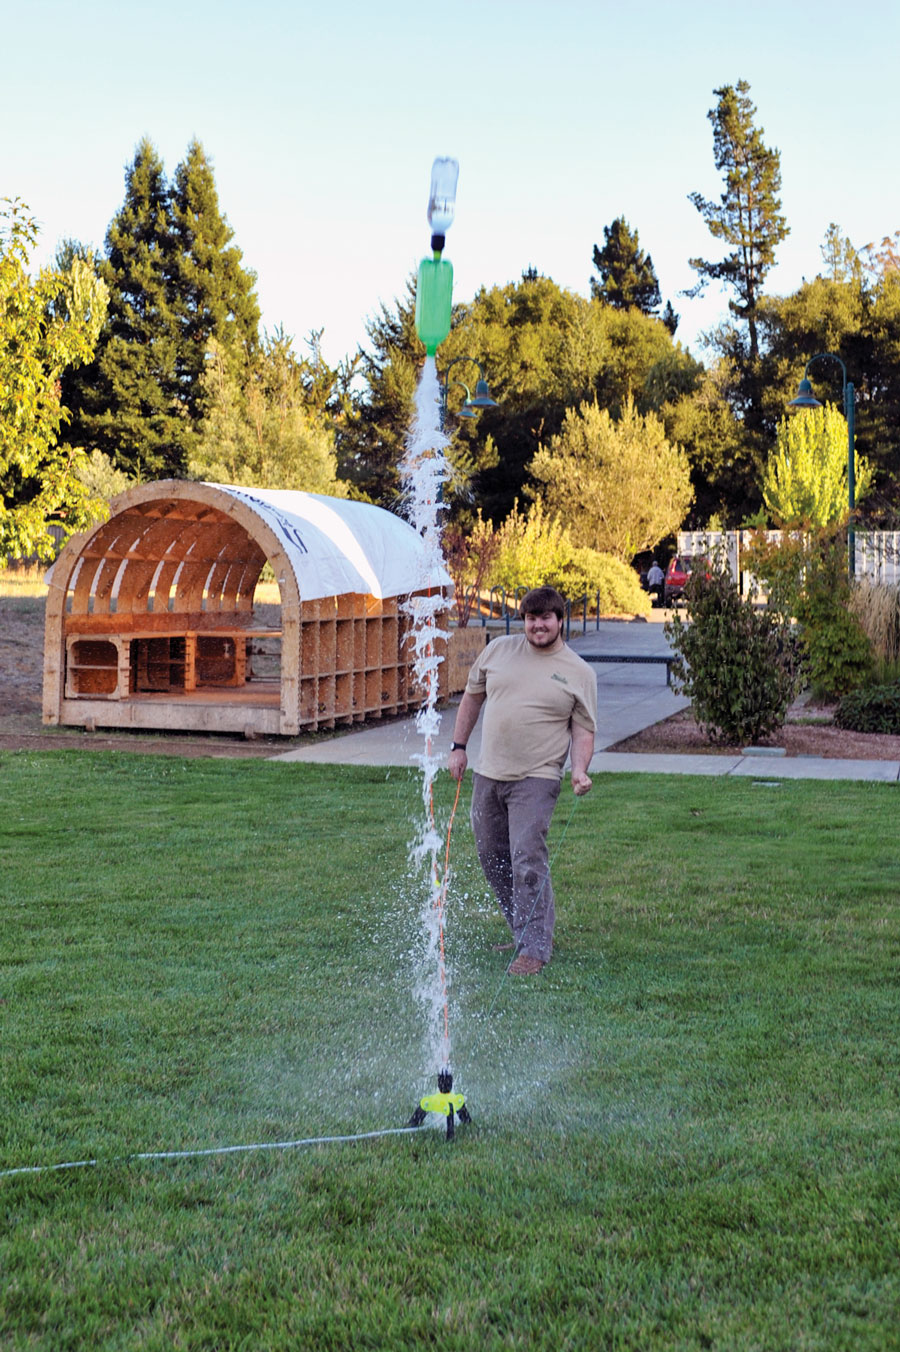 Launch Pro Multi-Stage Starter Kit and Ultimate Water Rocket Experimenter's Kit